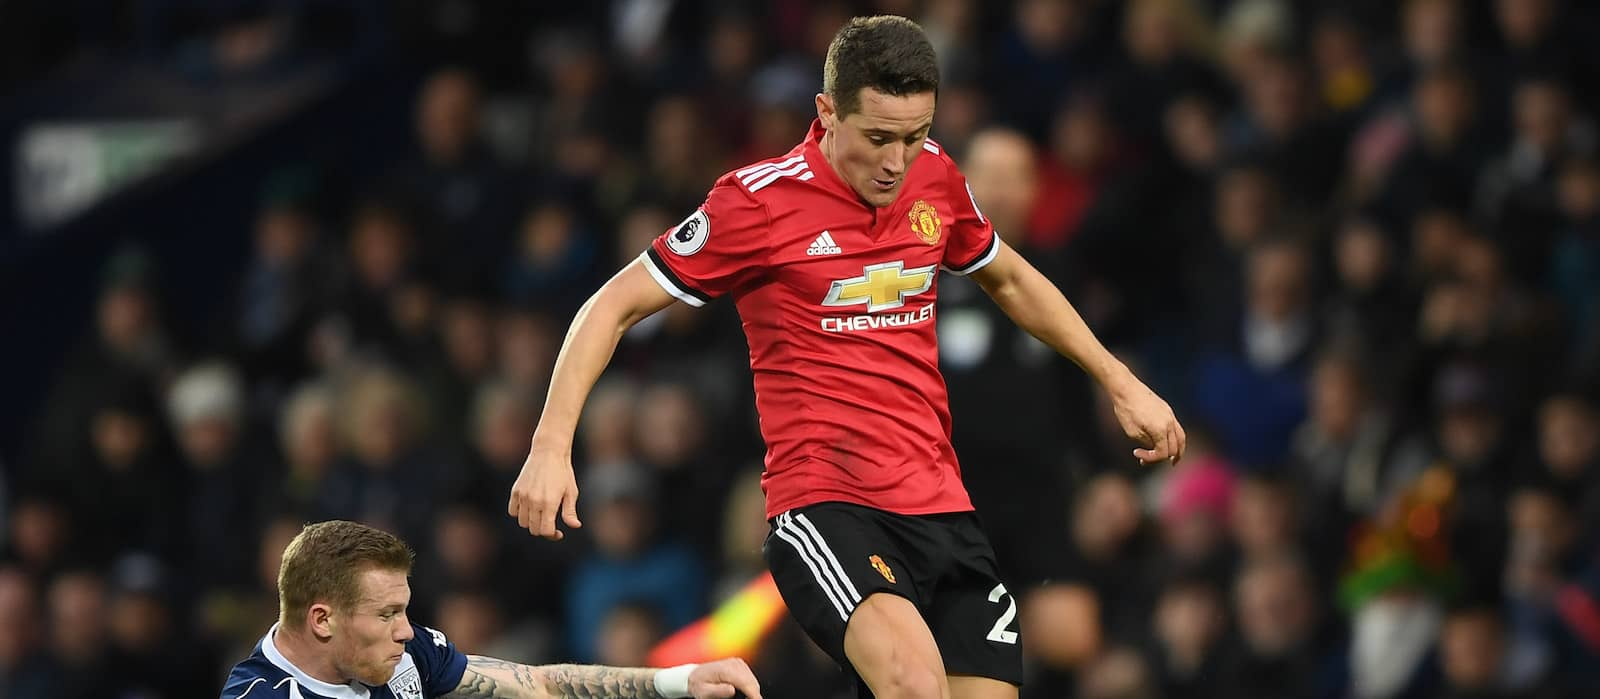 Manchester United star Ander Herrera gives Jose Mourinho just what he needs